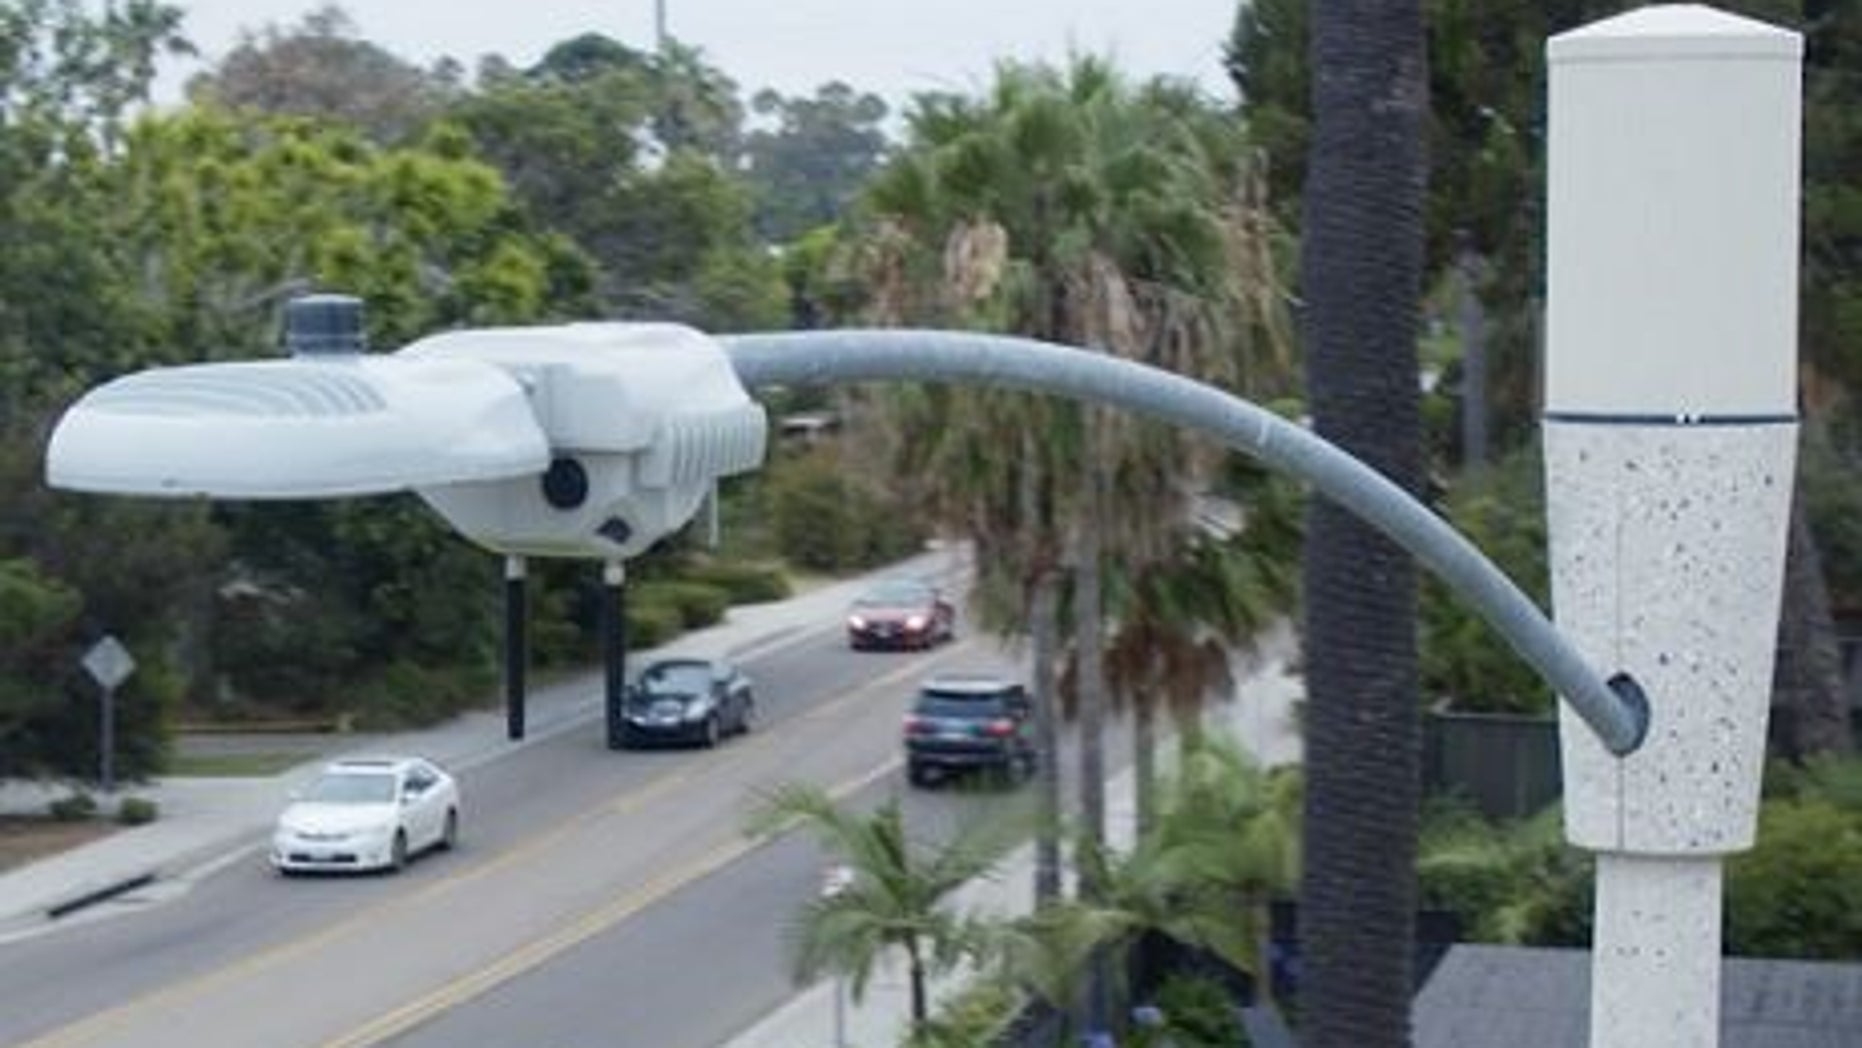 San Diego plans to install 4,200 video cameras and sensors on streetlights by 2020.